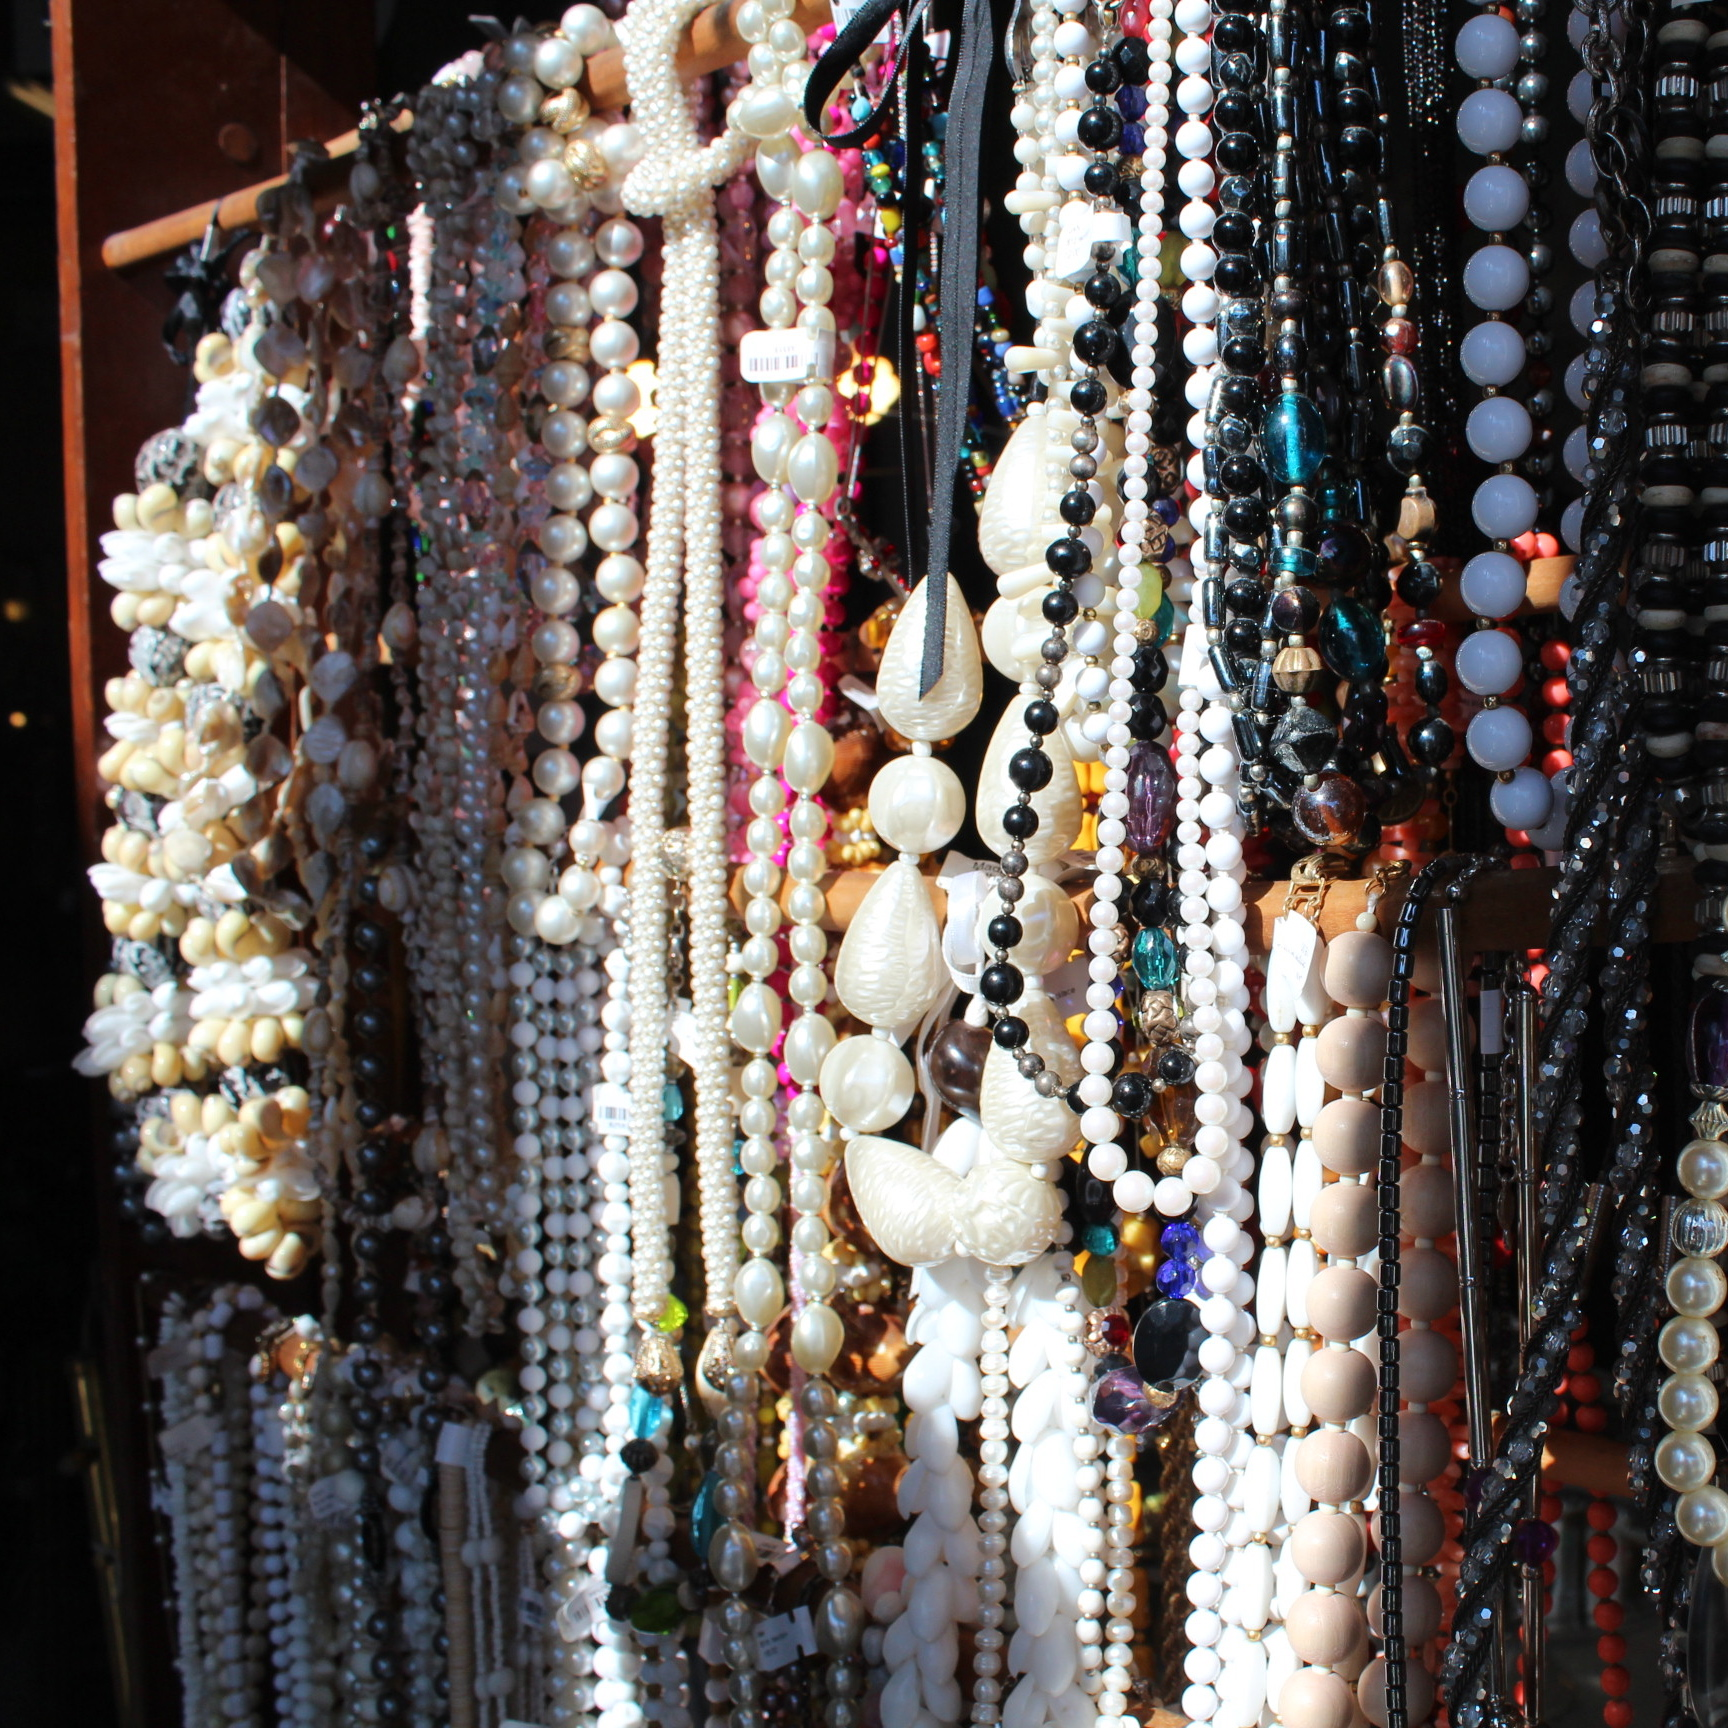 The Pearls Section